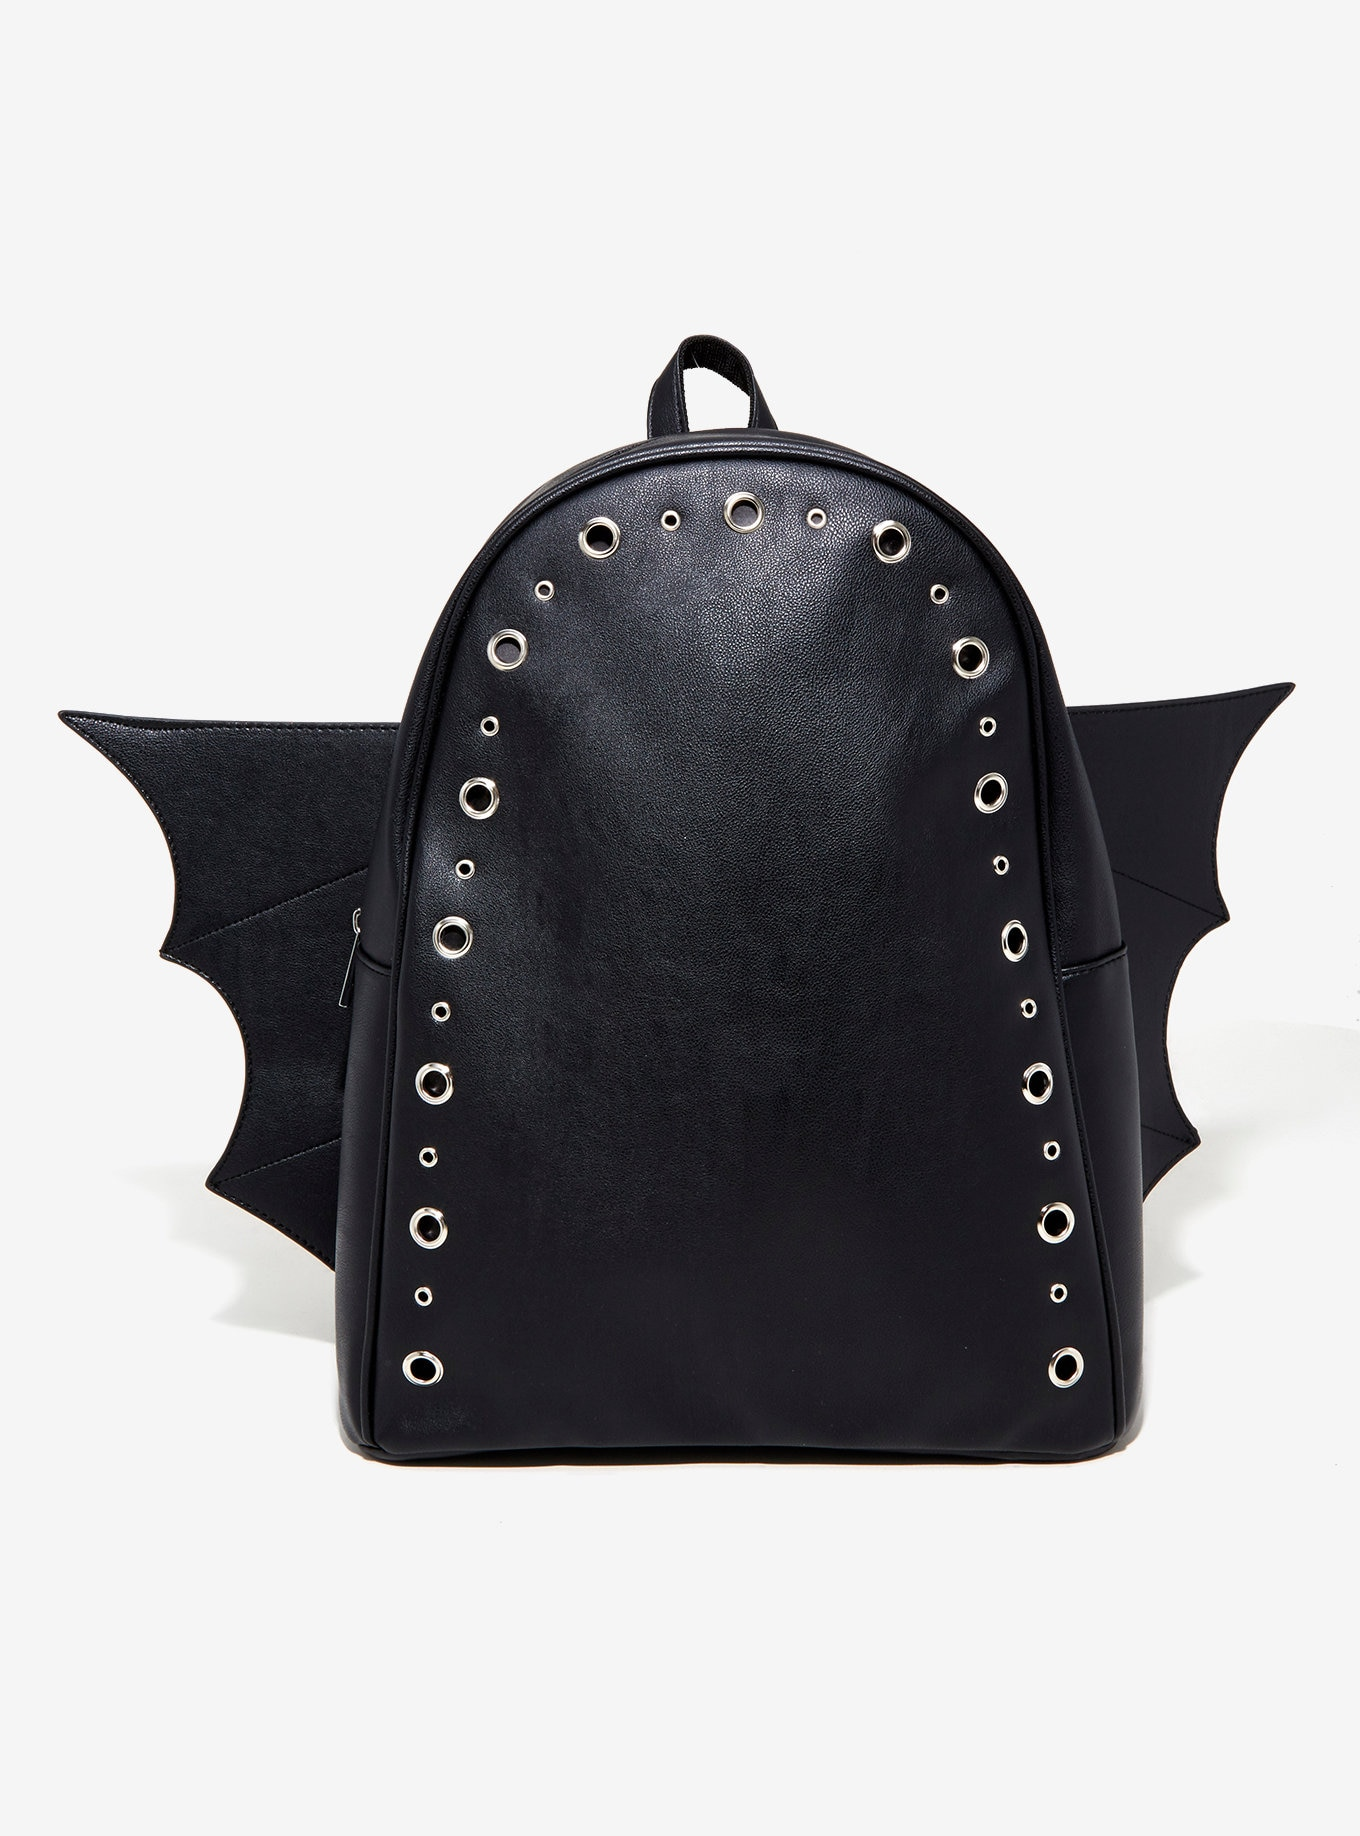 Gothic Lolita Black Bat Backpack With Wings Bag